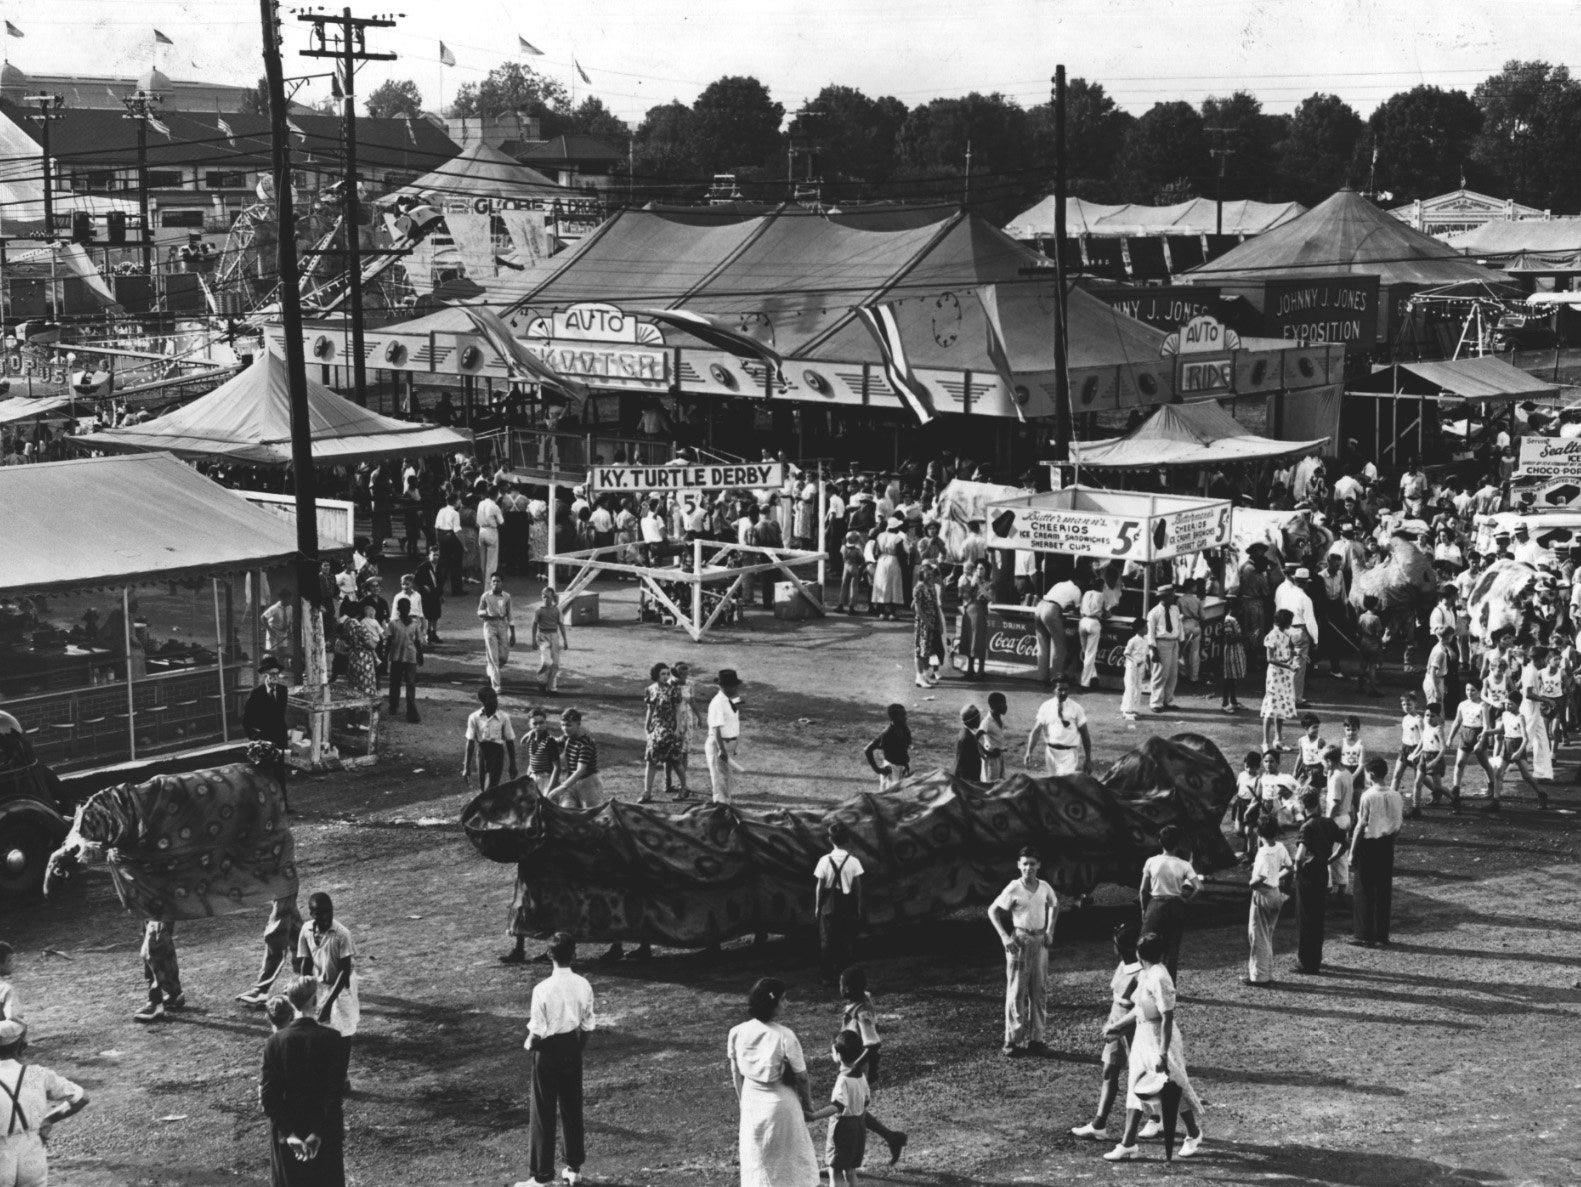 From cows to bees, creatures of all kinds abound at the Kentucky State Fair. In 1938, crowds gathered beneath a sign on the midway that proclaimed the Kentucky Turtle Derby.